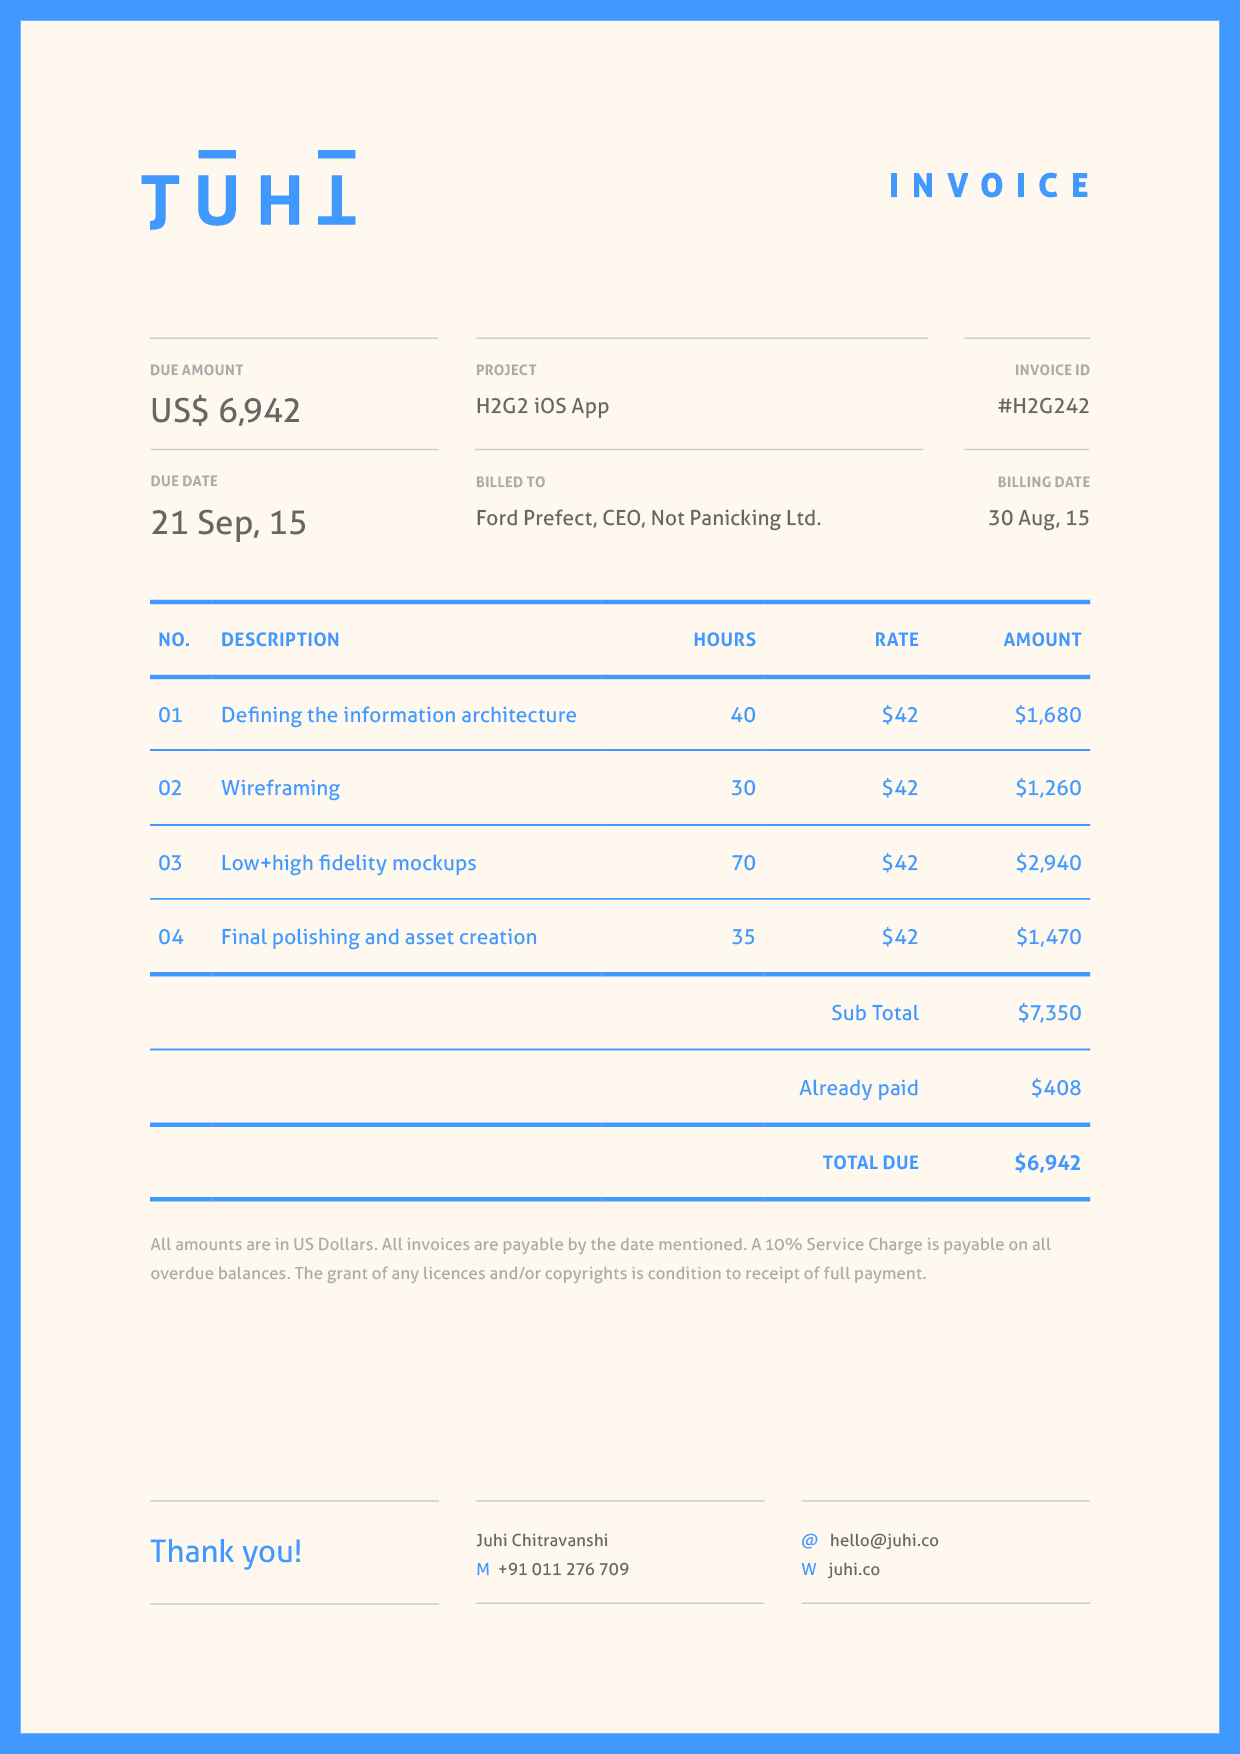 Usdgus  Unusual Dont Hold Back On Your Invoice  Inspiring Designs  With Engaging Invoice By Juhi Chitravanshi Follow With Lovely How To Make Invoice In Word Also Invoice Pricing For New Cars In Addition Service Rendered Invoice And Free Basic Invoice Template As Well As Video Invoice Additionally Ford F Invoice From Inspirationfeedcom With Usdgus  Engaging Dont Hold Back On Your Invoice  Inspiring Designs  With Lovely Invoice By Juhi Chitravanshi Follow And Unusual How To Make Invoice In Word Also Invoice Pricing For New Cars In Addition Service Rendered Invoice From Inspirationfeedcom